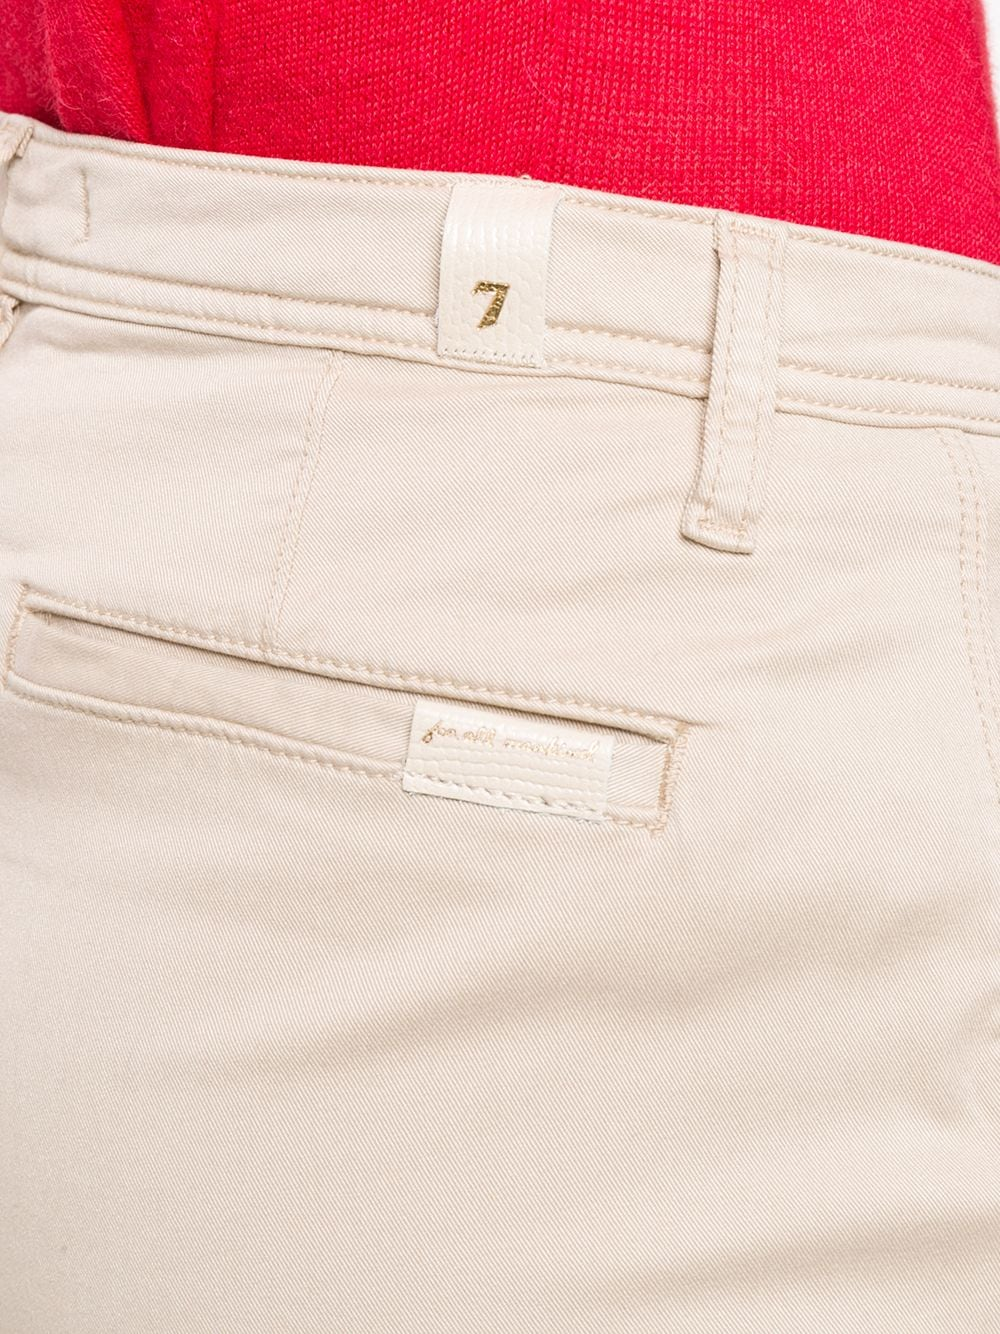 Picture of 7 For All Mankind | Cargo Chino